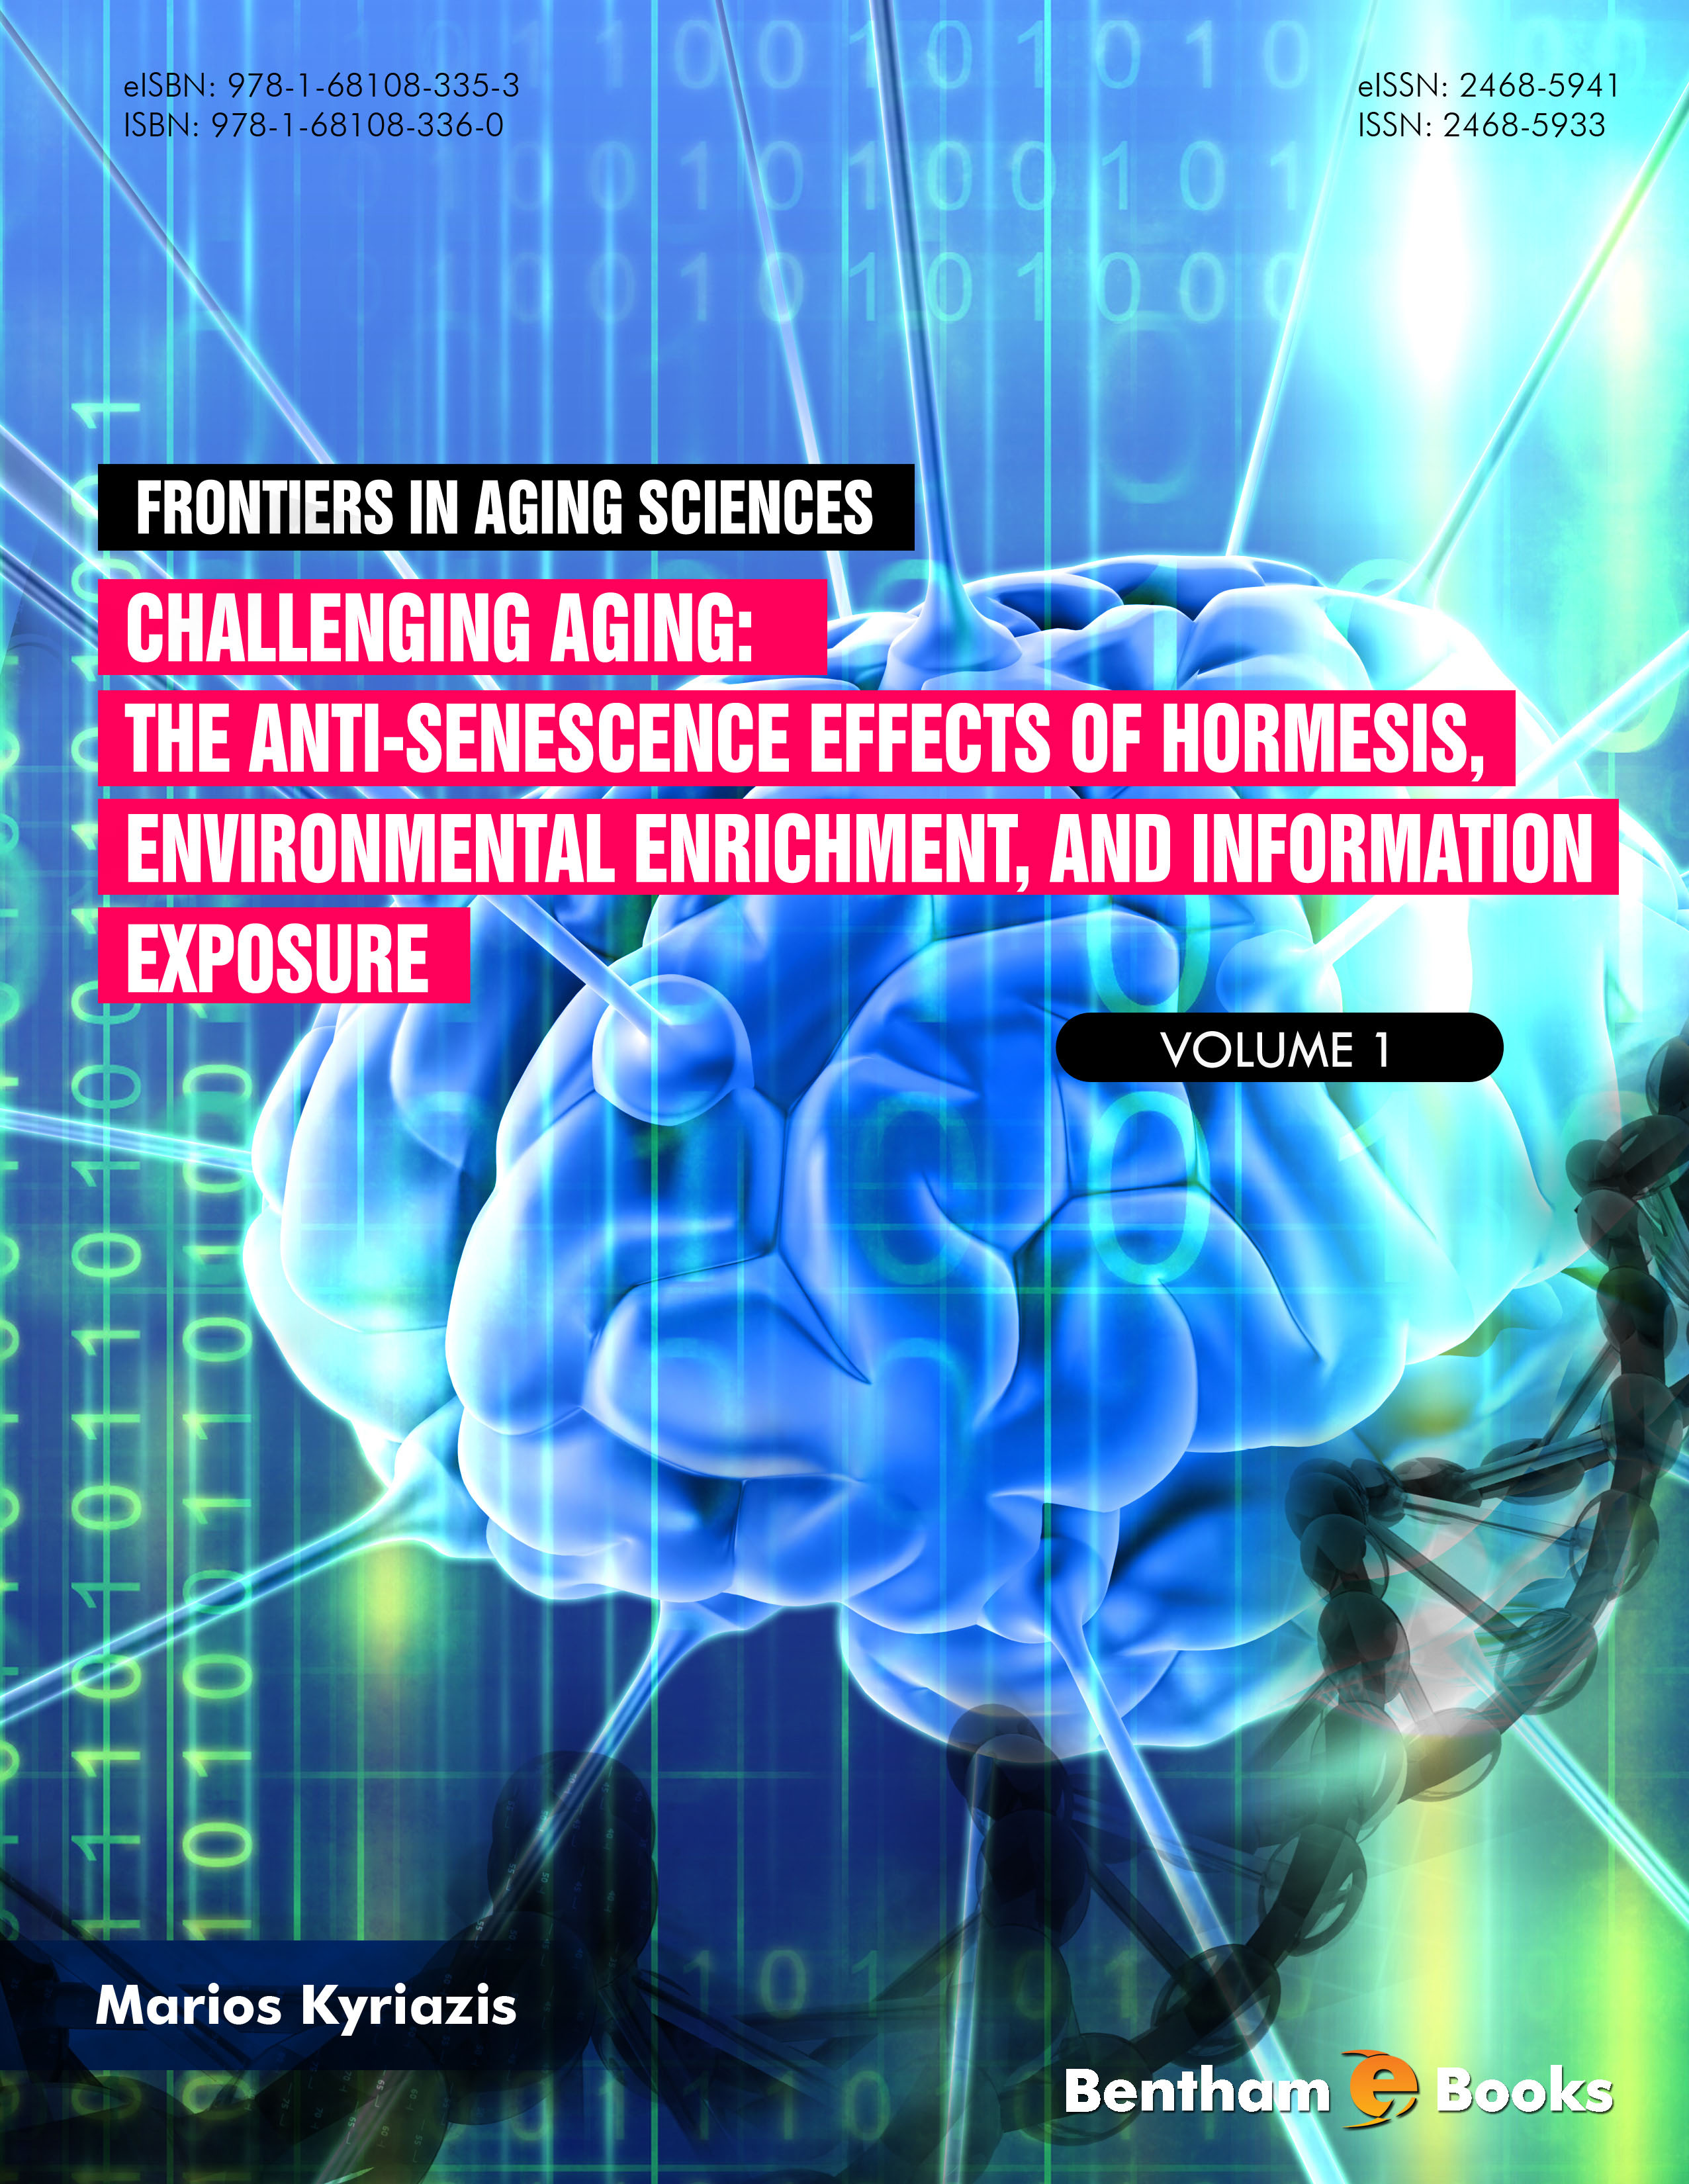 Challenging Aging: The Anti-senescence Effects of Hormesis, Environmental Enrichment, and Information Exposure